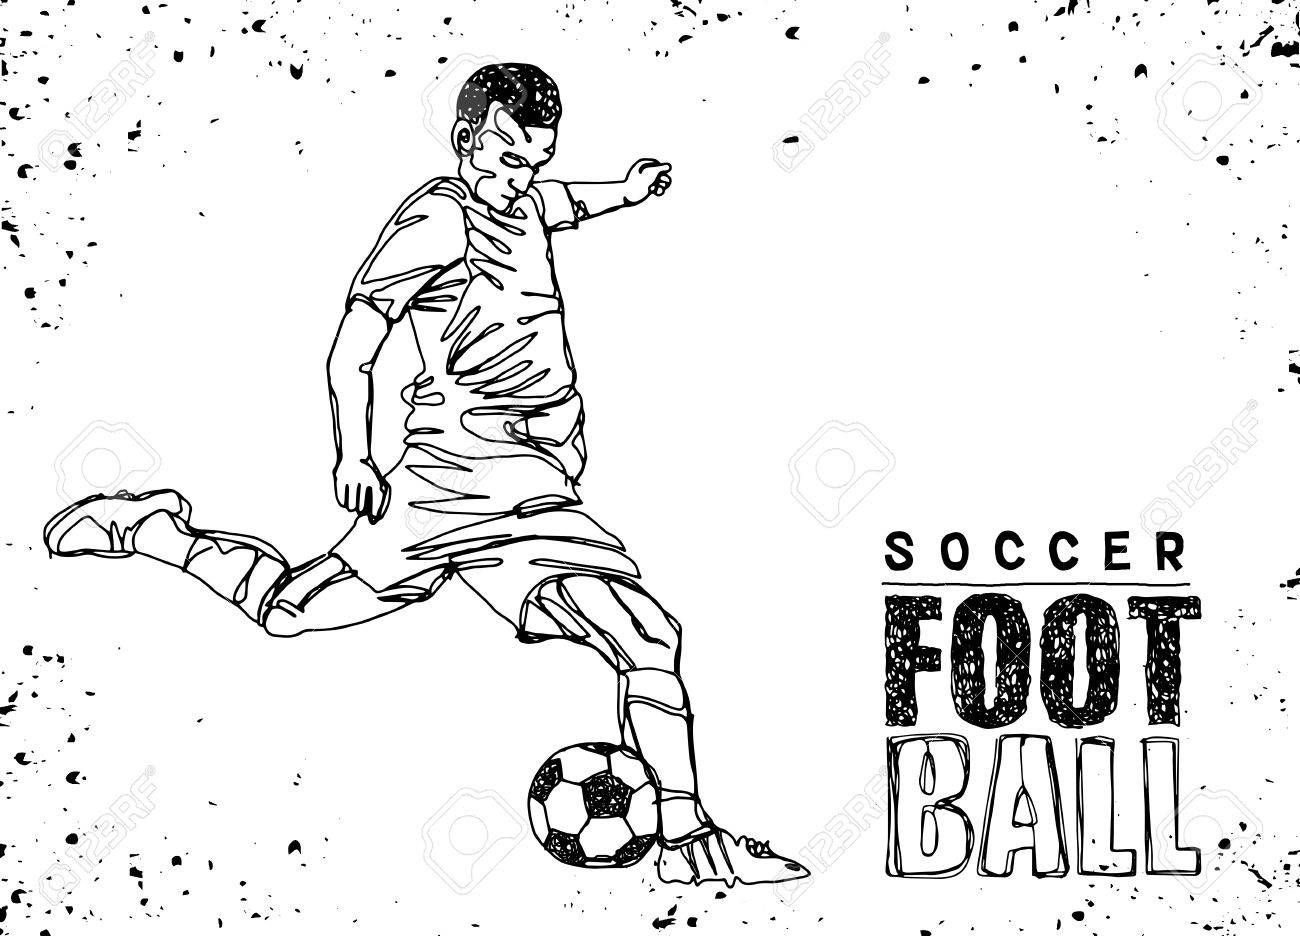 Continuous Line Drawing Or One Line Drawing Of Two Soccer Players Scrambling For Ball Vector I Continuous Line Drawing Photography Backdrop Stand Line Drawing